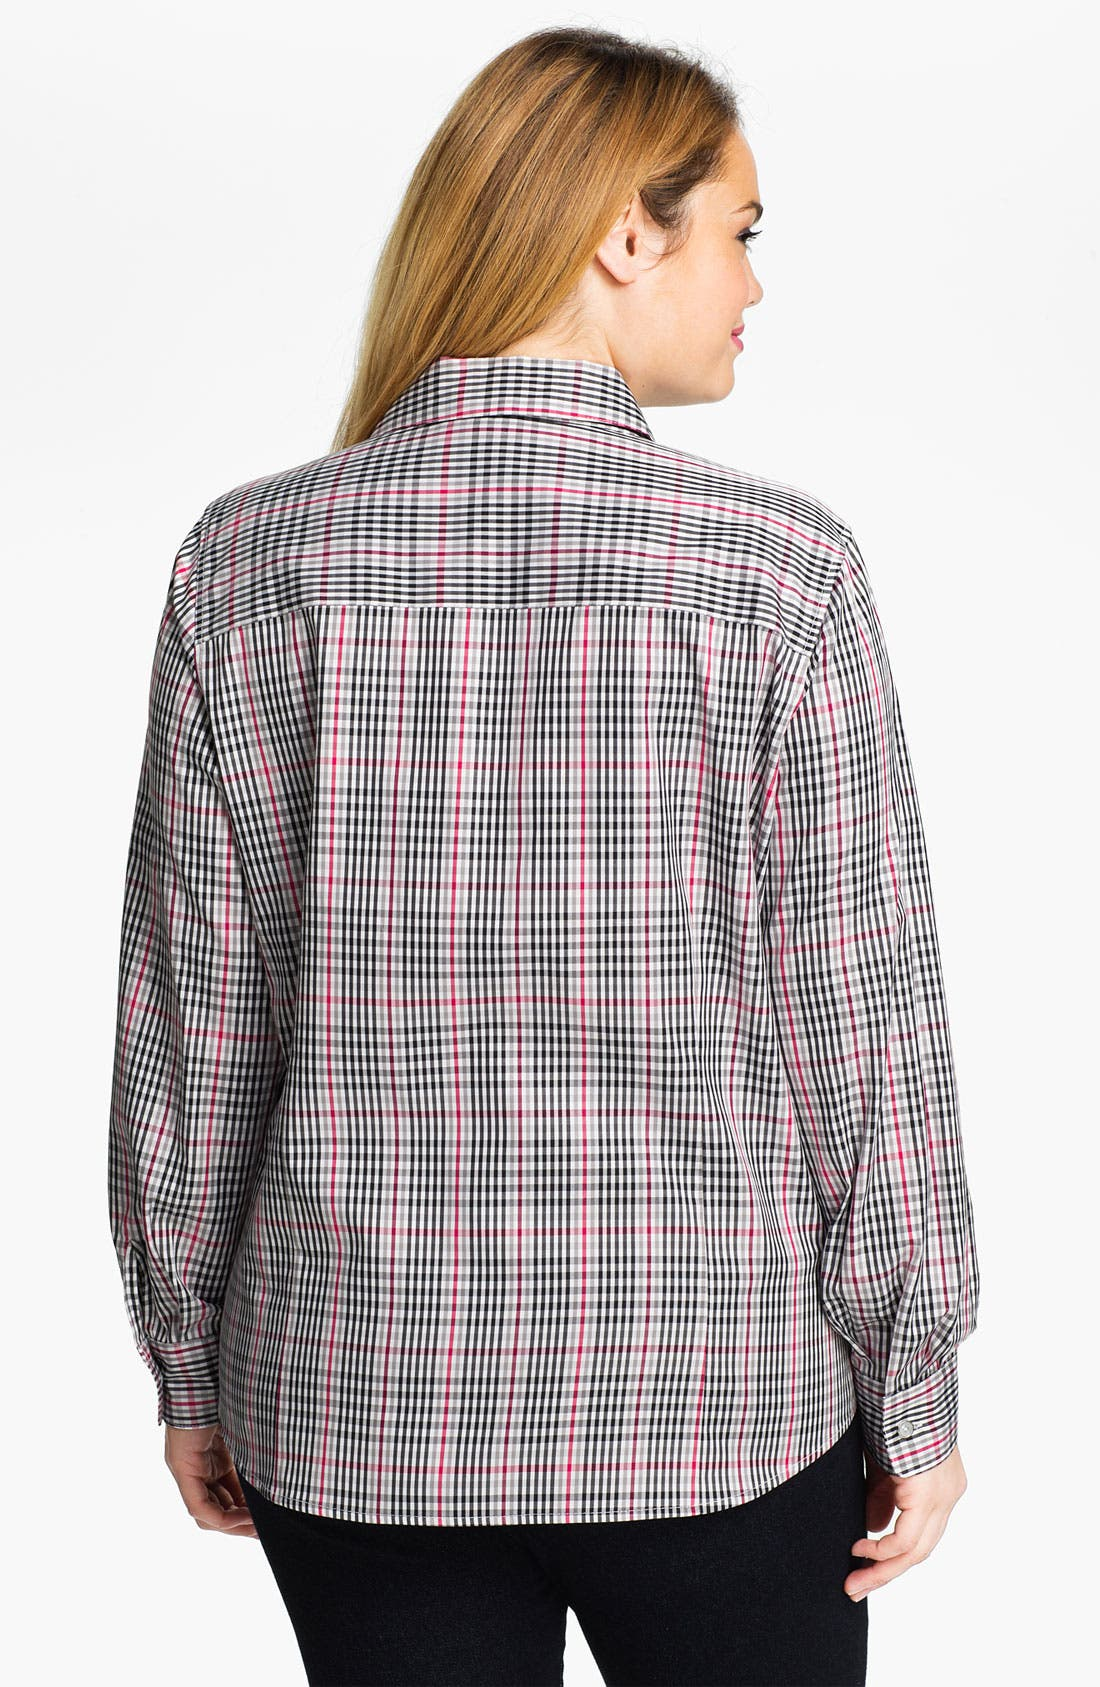 Alternate Image 2  - Foxcroft 'Holiday Check' Wrinkle Free Shaped Shirt (Plus)